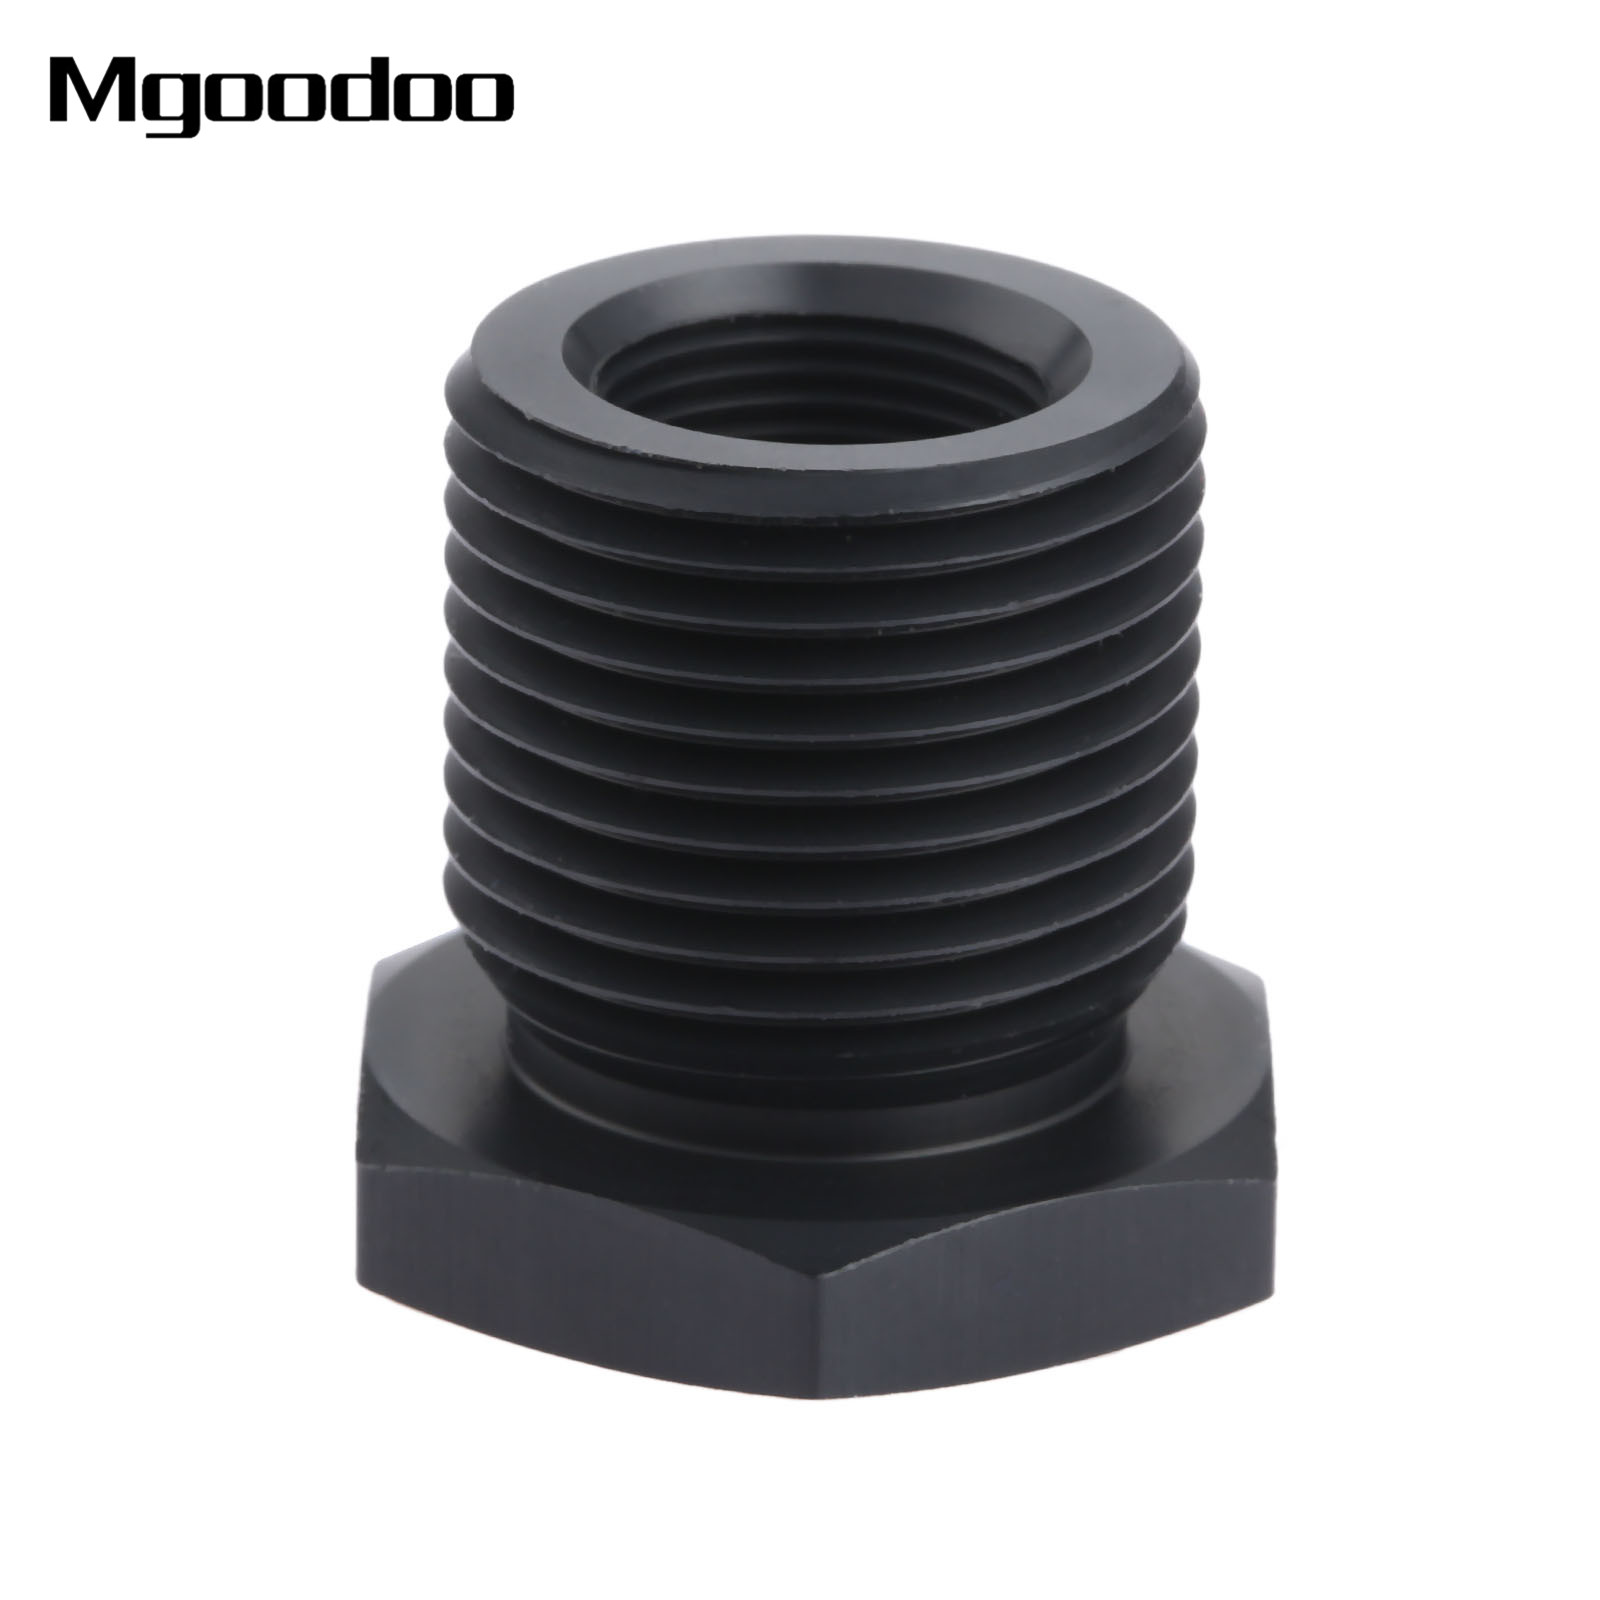 Aluminum Alloy Automotive Threaded Oil Filter Adapter 13//16-16 to 1//2-28 Black